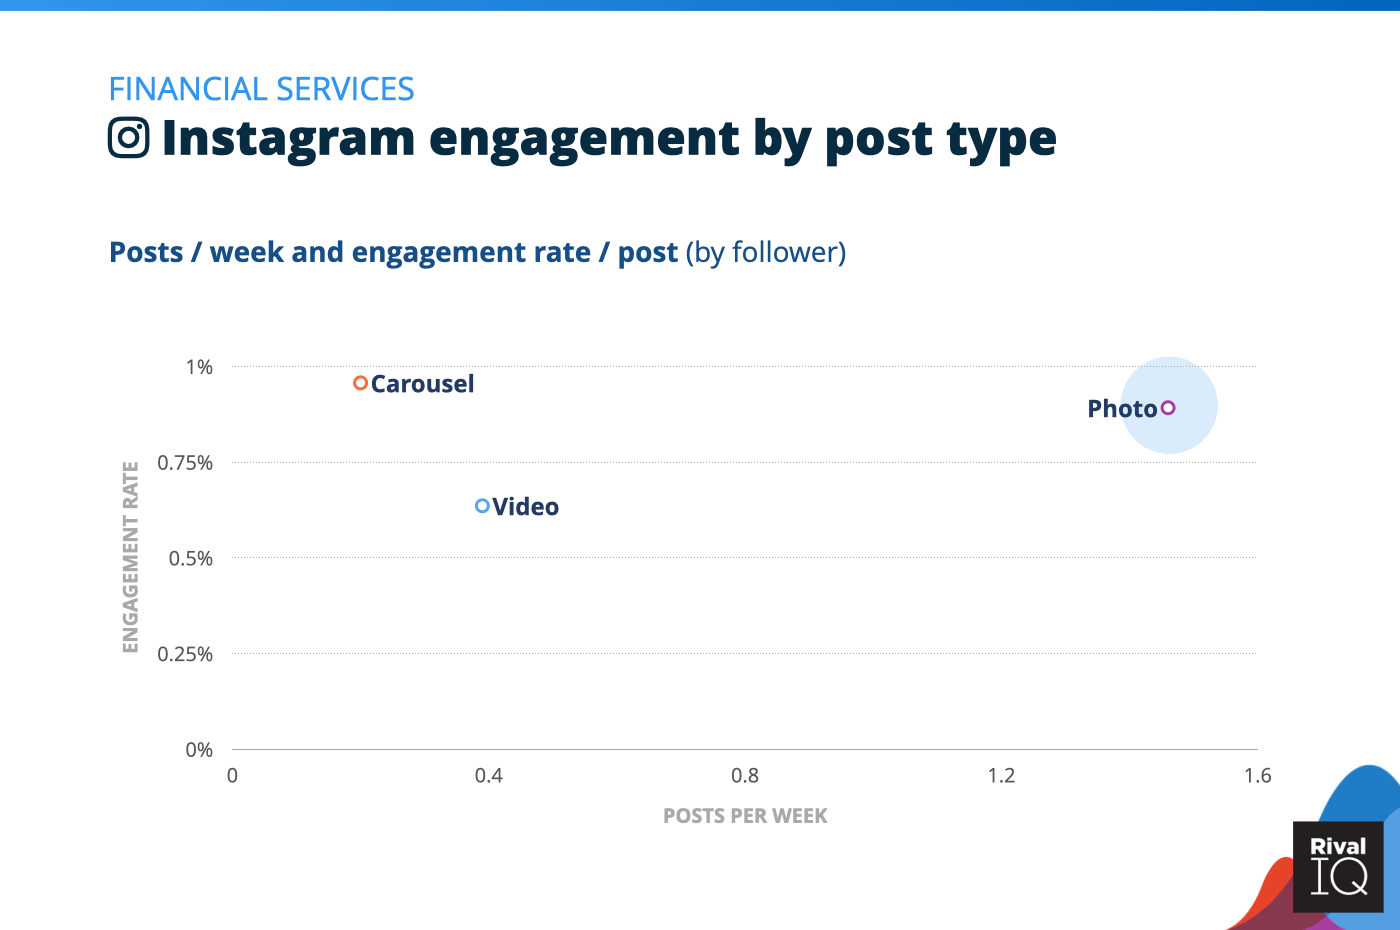 Chart of social media benchmarks for Instagram posts per week and engagement rate by post type, Financial Services